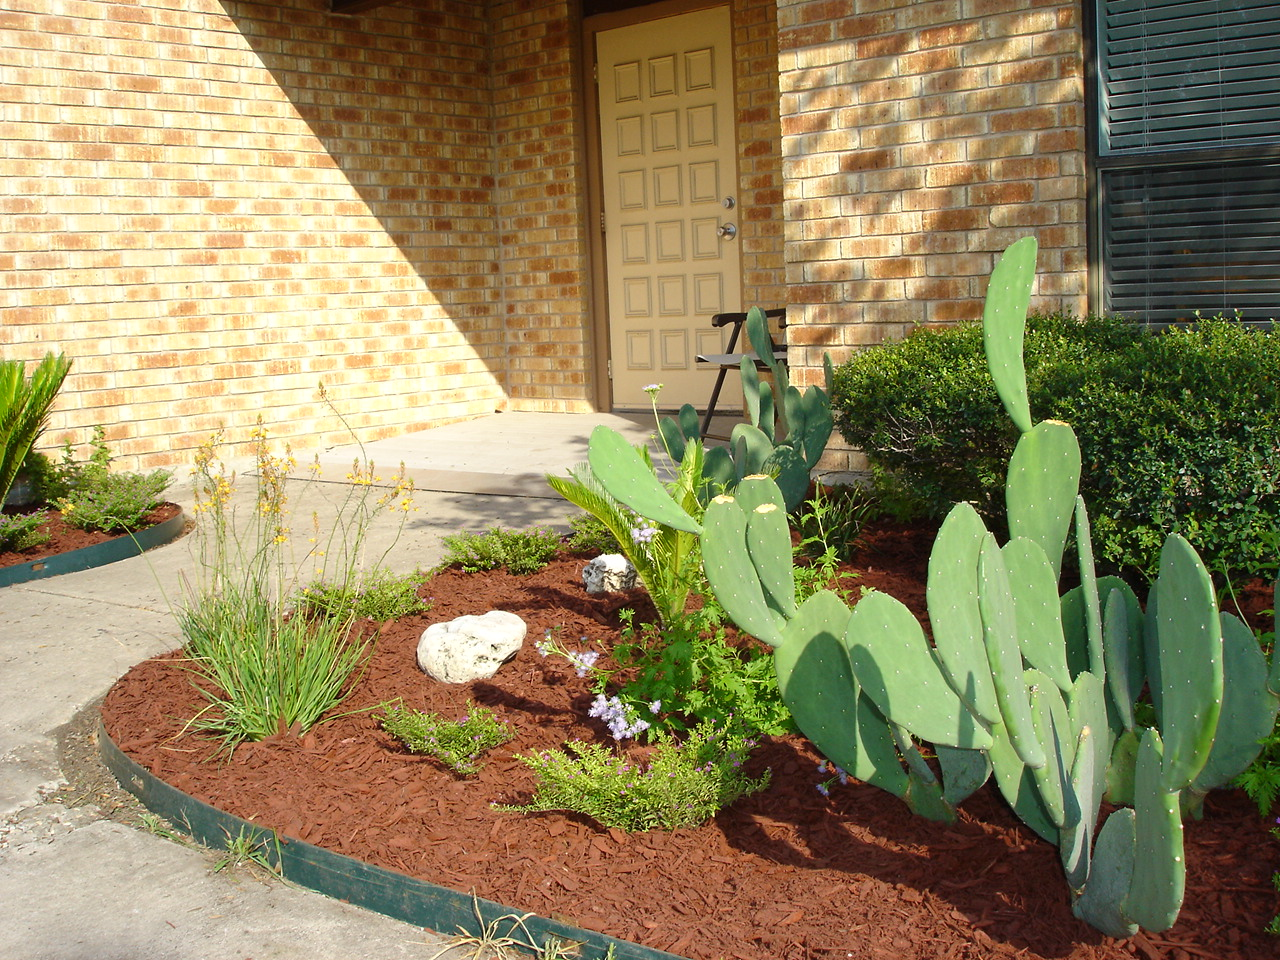 Bro. Brian mulched the front flower beds this weekend and now we have a new look!